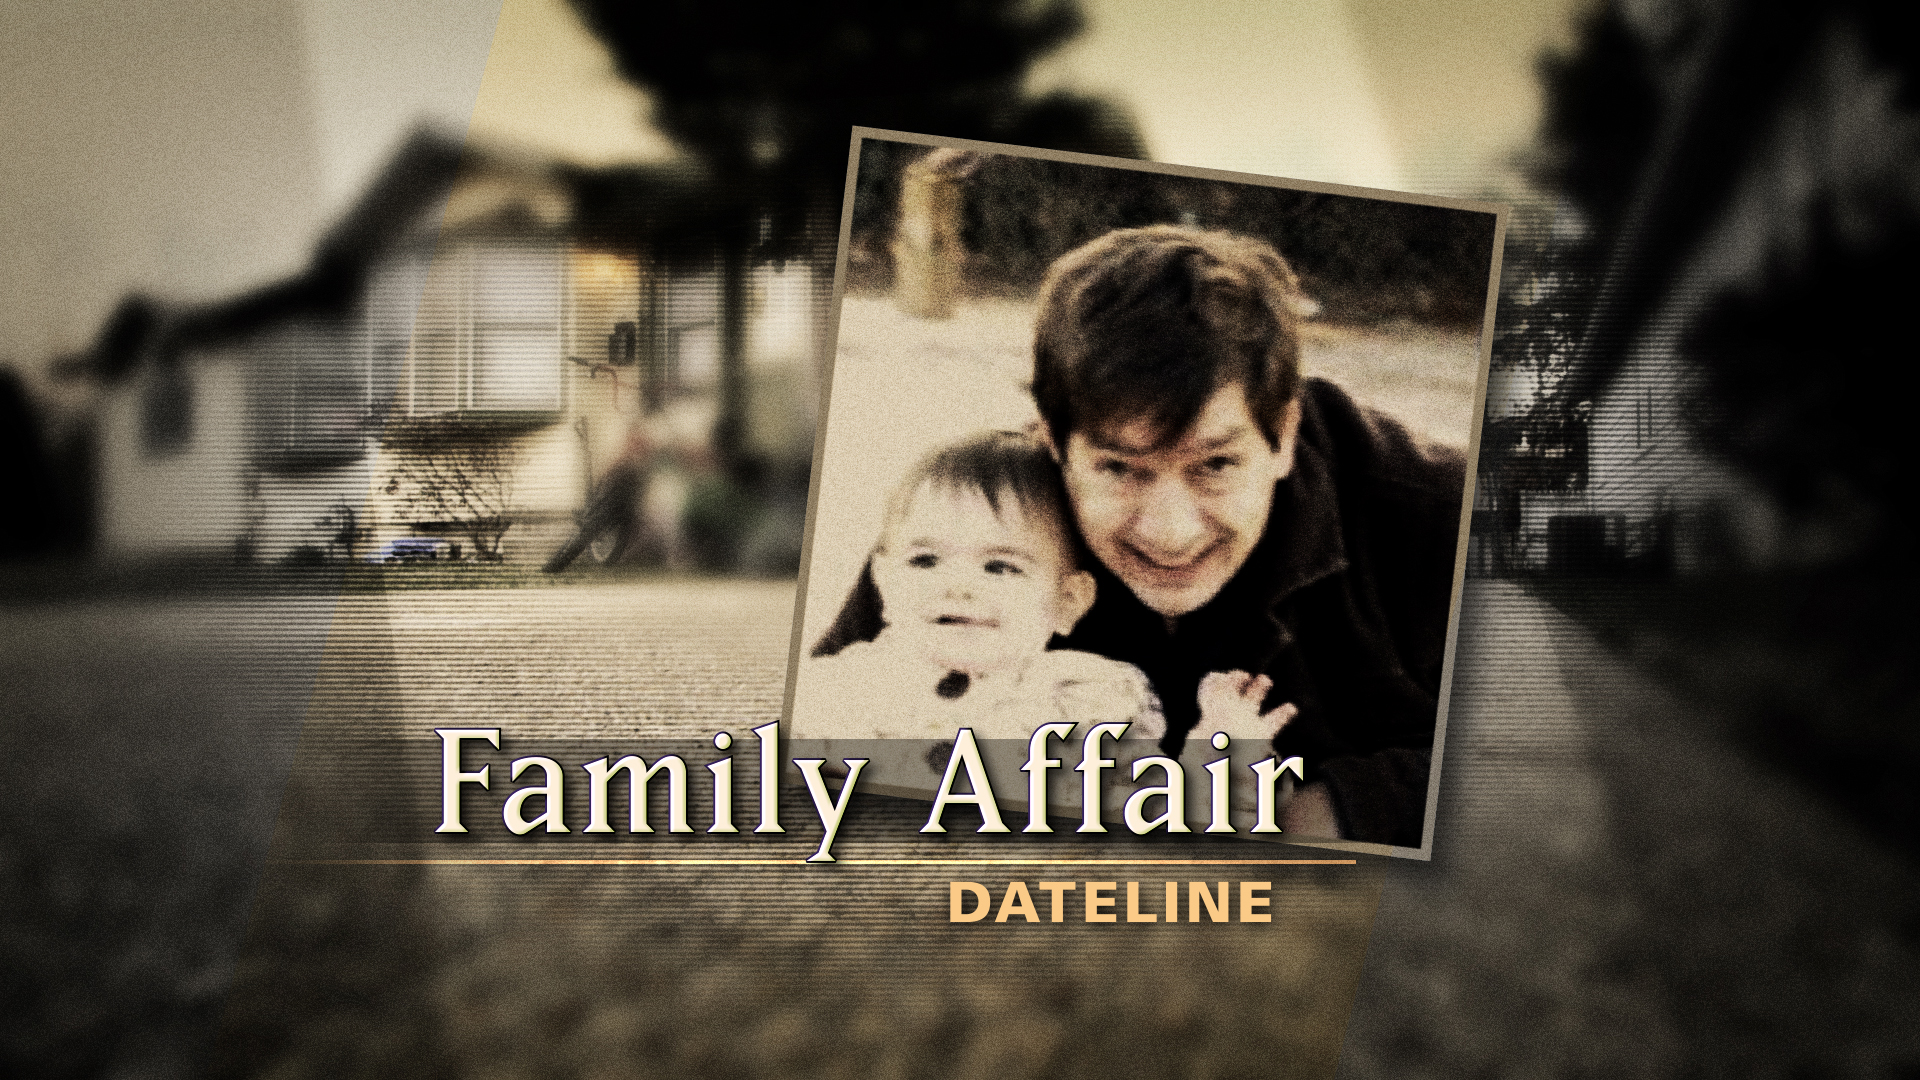 Dateline - April 10, 2... Judge Law And Order